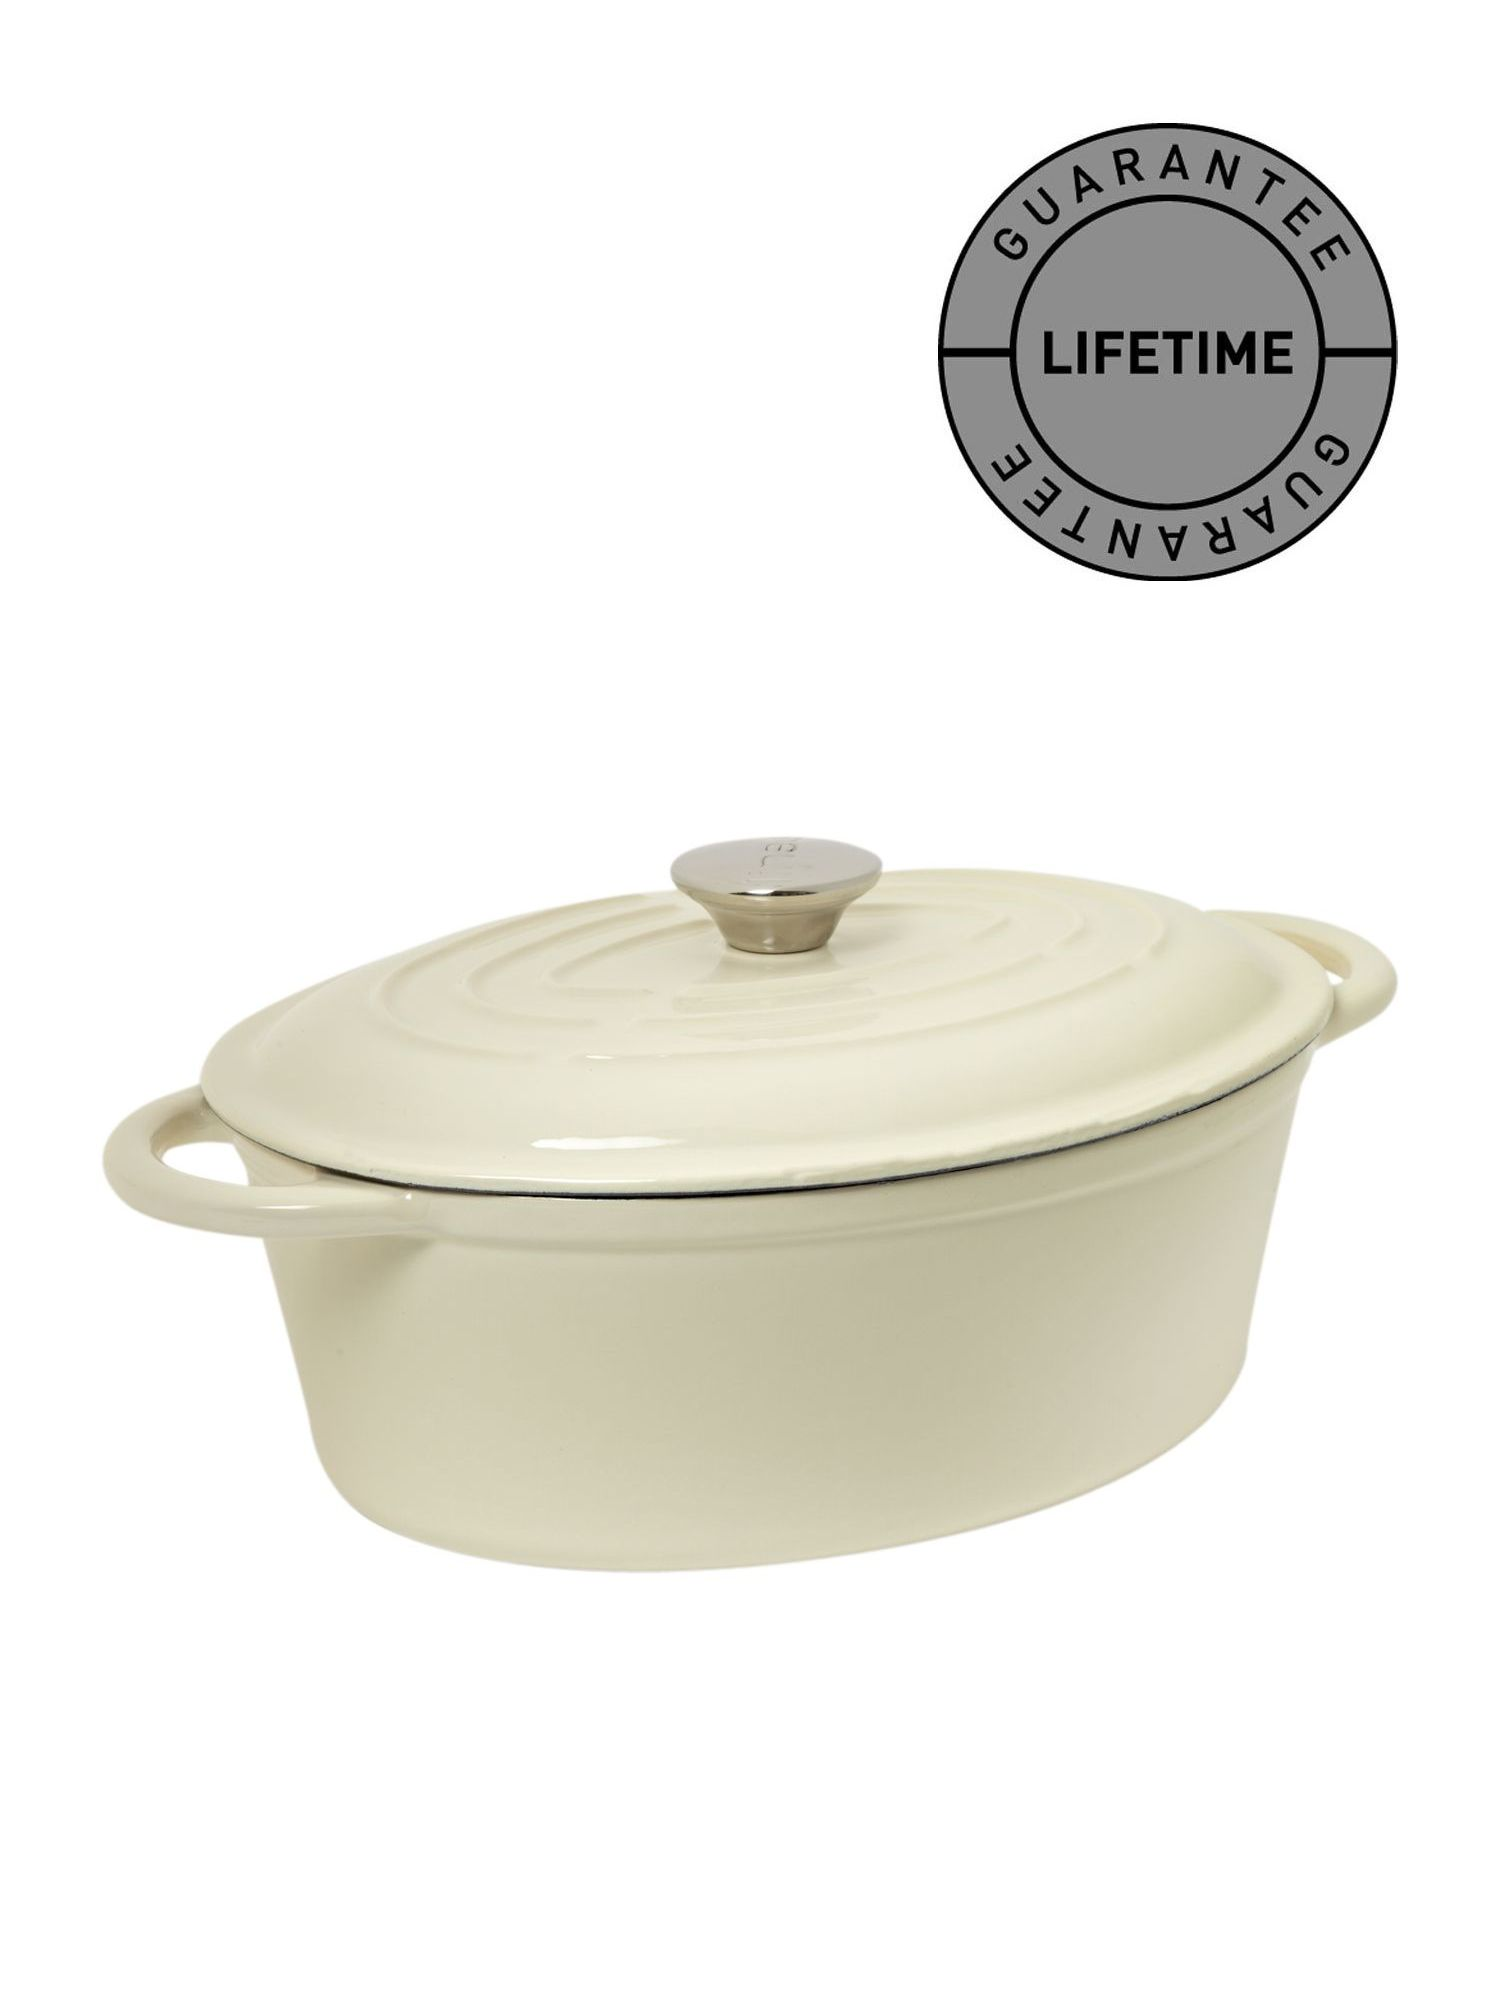 Cream cast iron oval casserole, 27cm